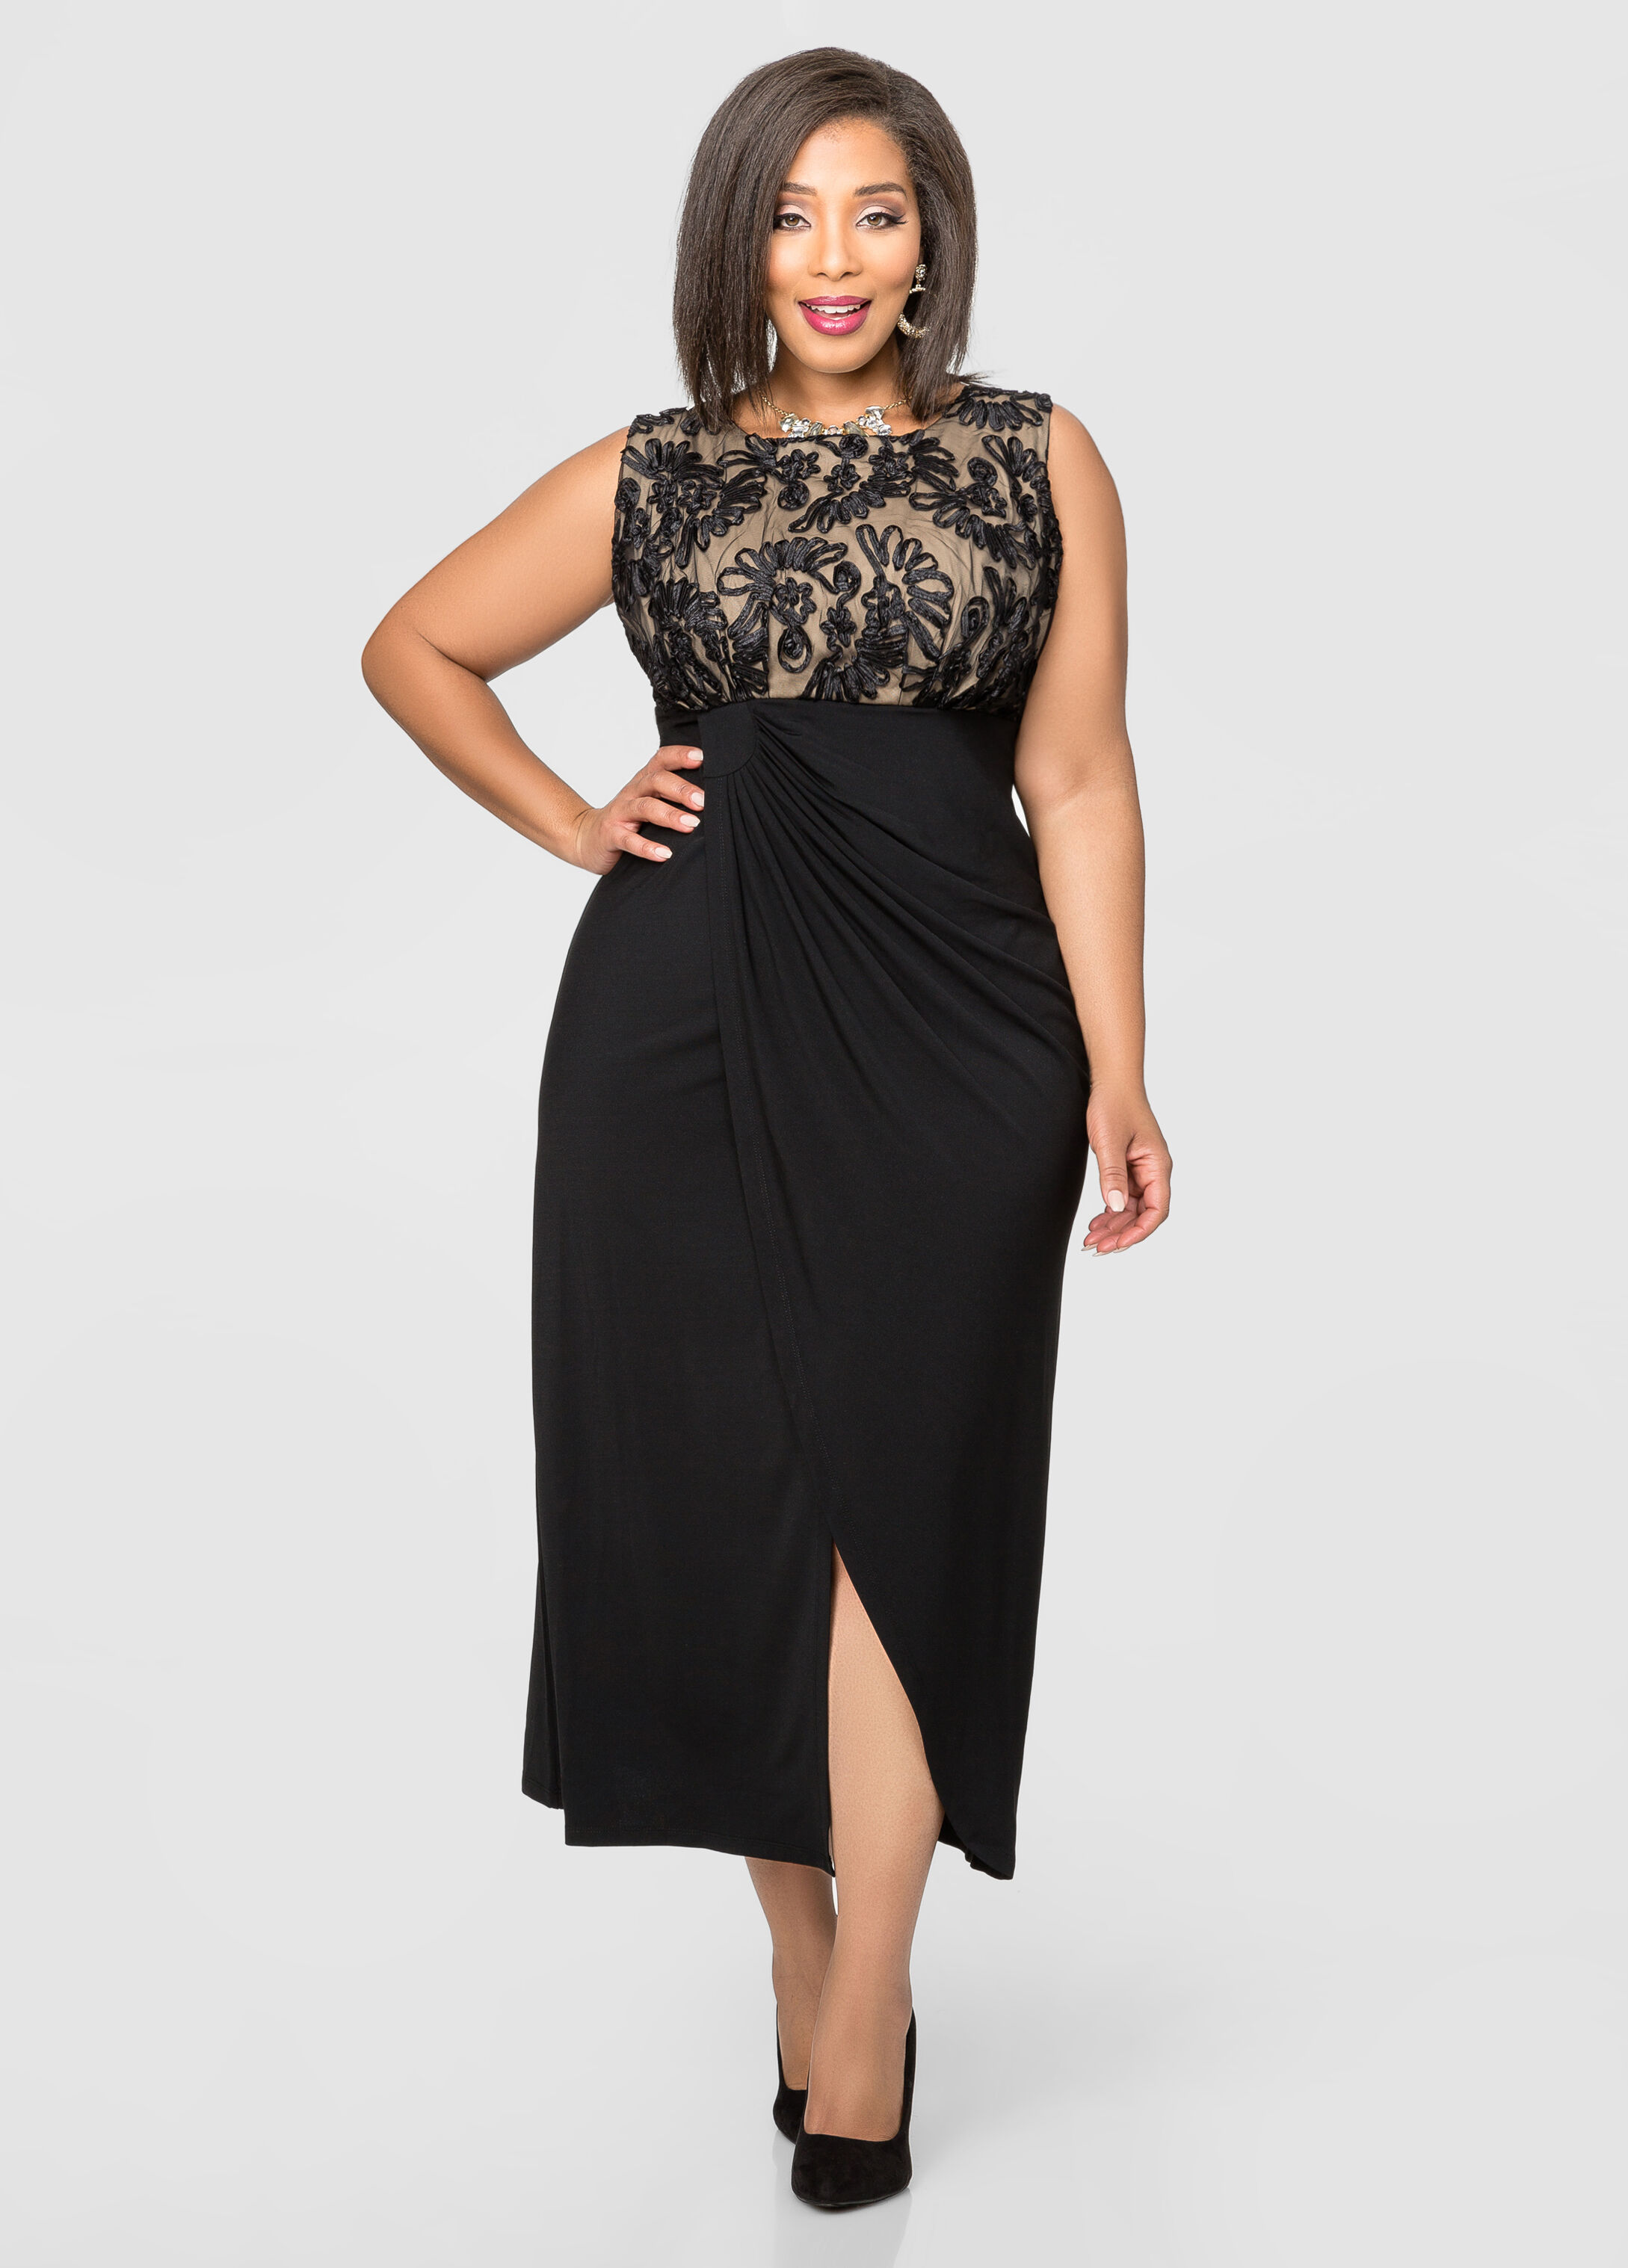 Plus Size Womens Special Occasion Dresses | Cocktail ...